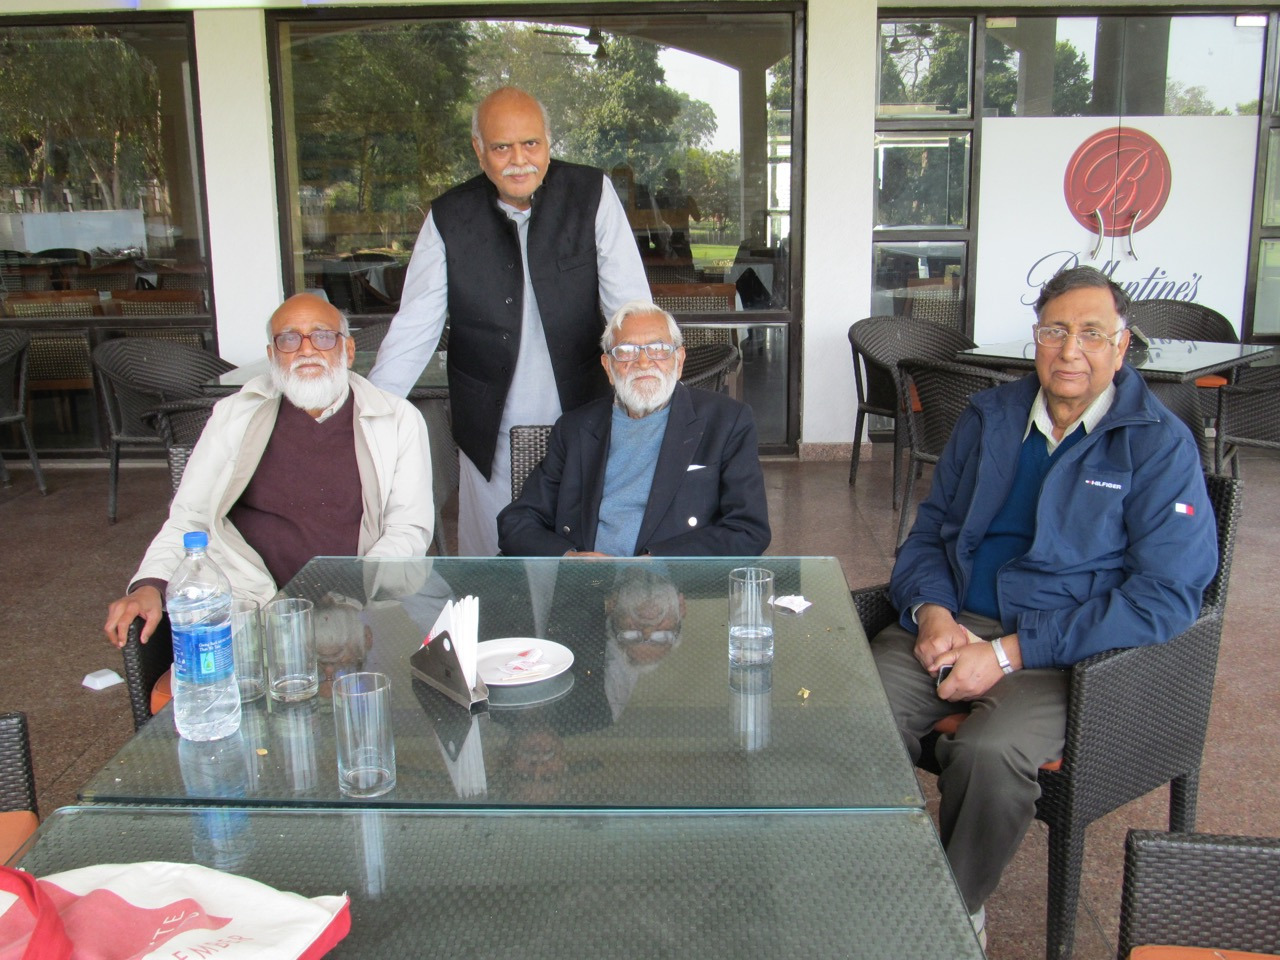 From left, CM Naim, historian Saleem Kidwai (standing), Ram Advani and book collector Aslam Mahmud. Photo: Unknown waiter at Lucknow golf course, February 2015, via CM Naim.